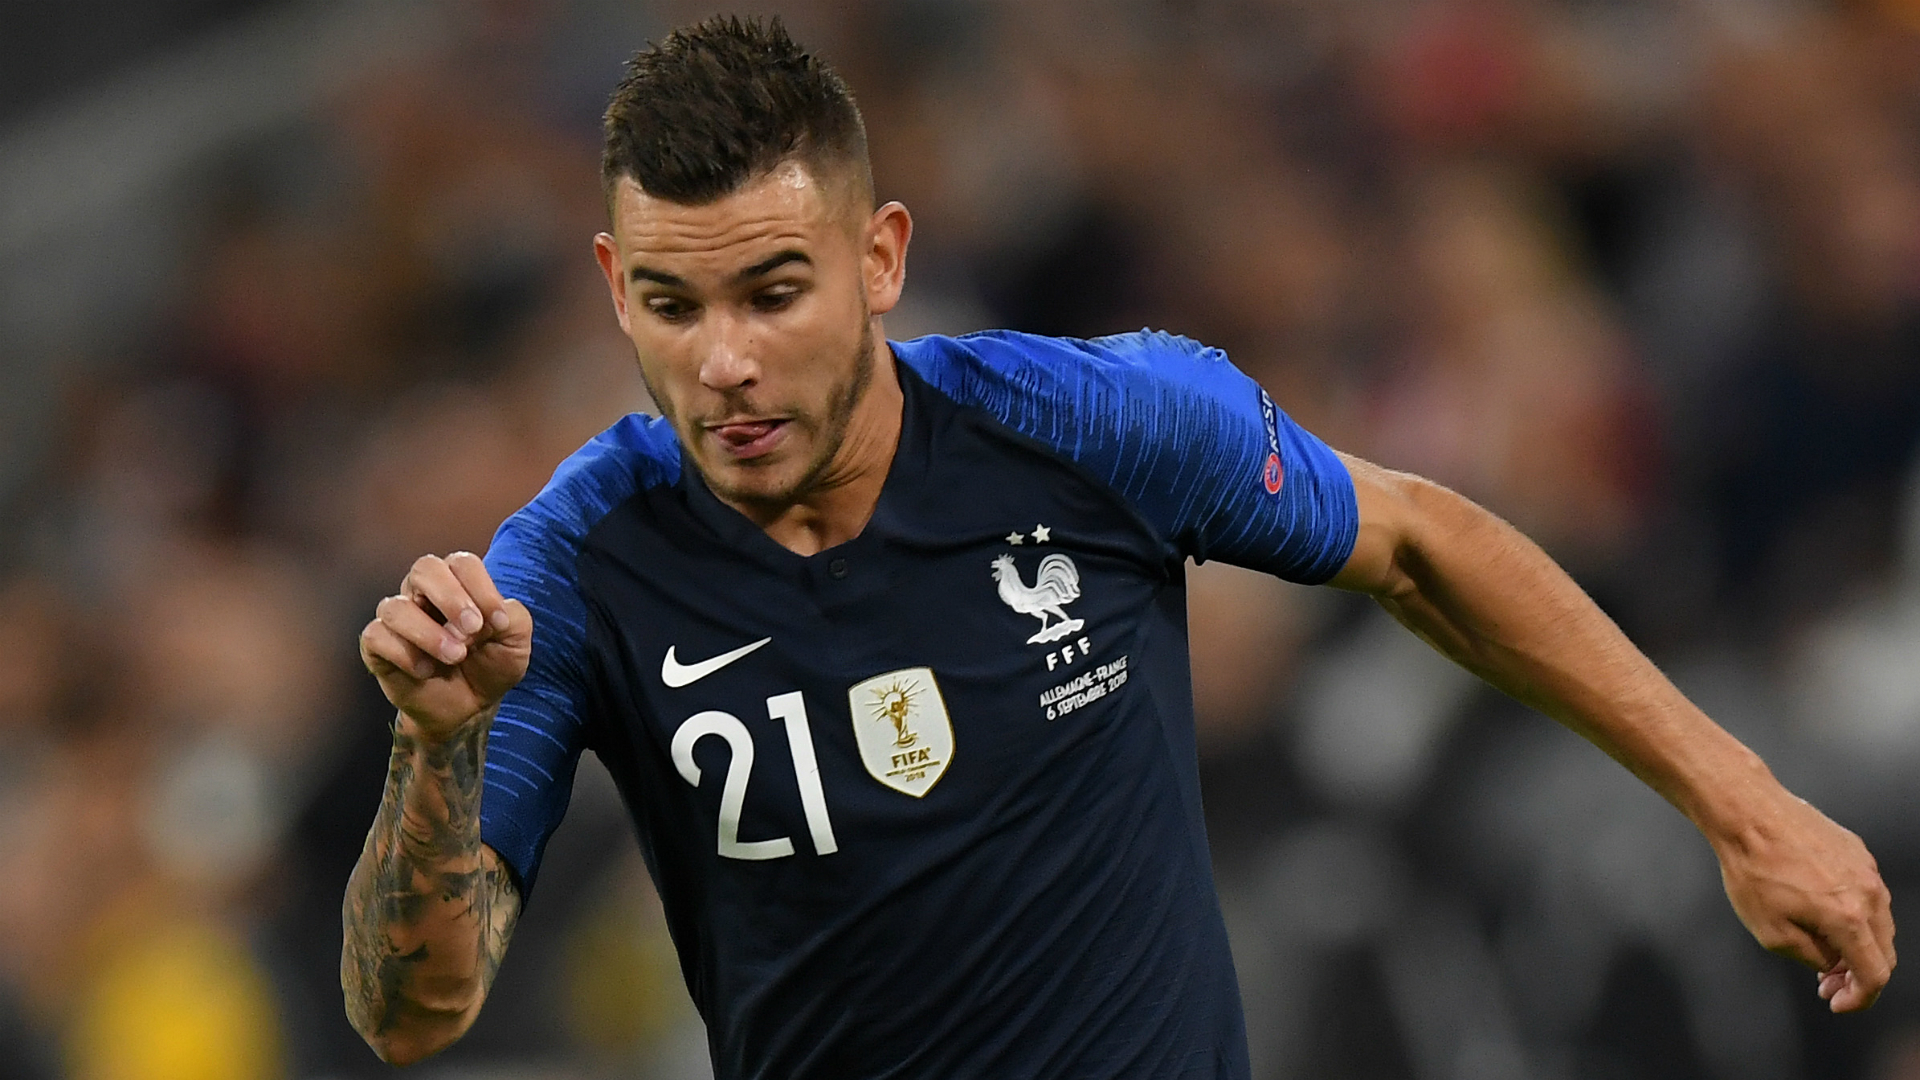 Bayern Munich sign Lucas Hernandez from Atletico Madrid for 80m